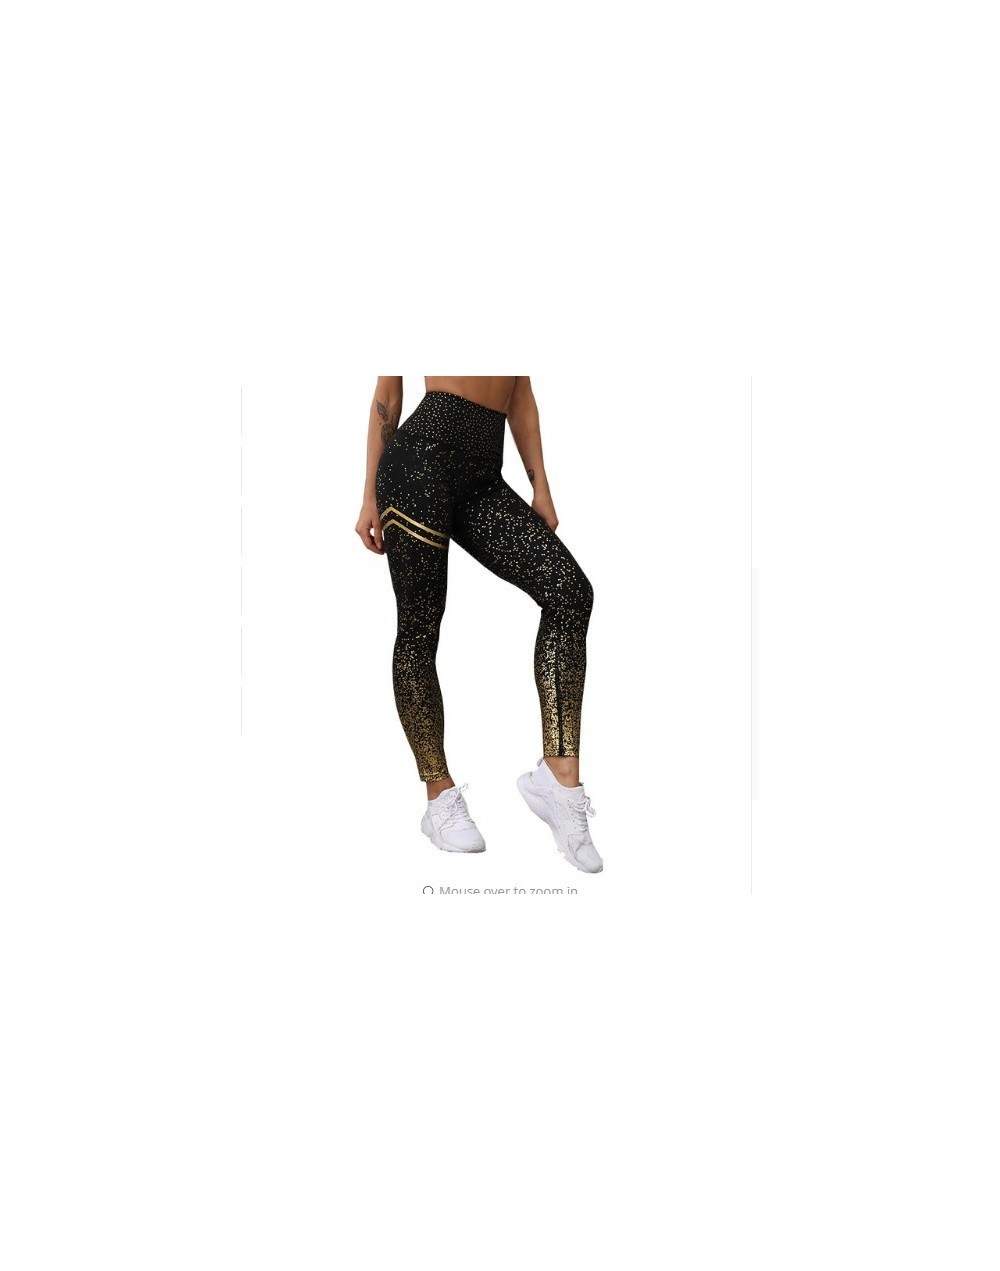 VIP leggings for Dropshipping customer - black with gold - 4N3094537639-3